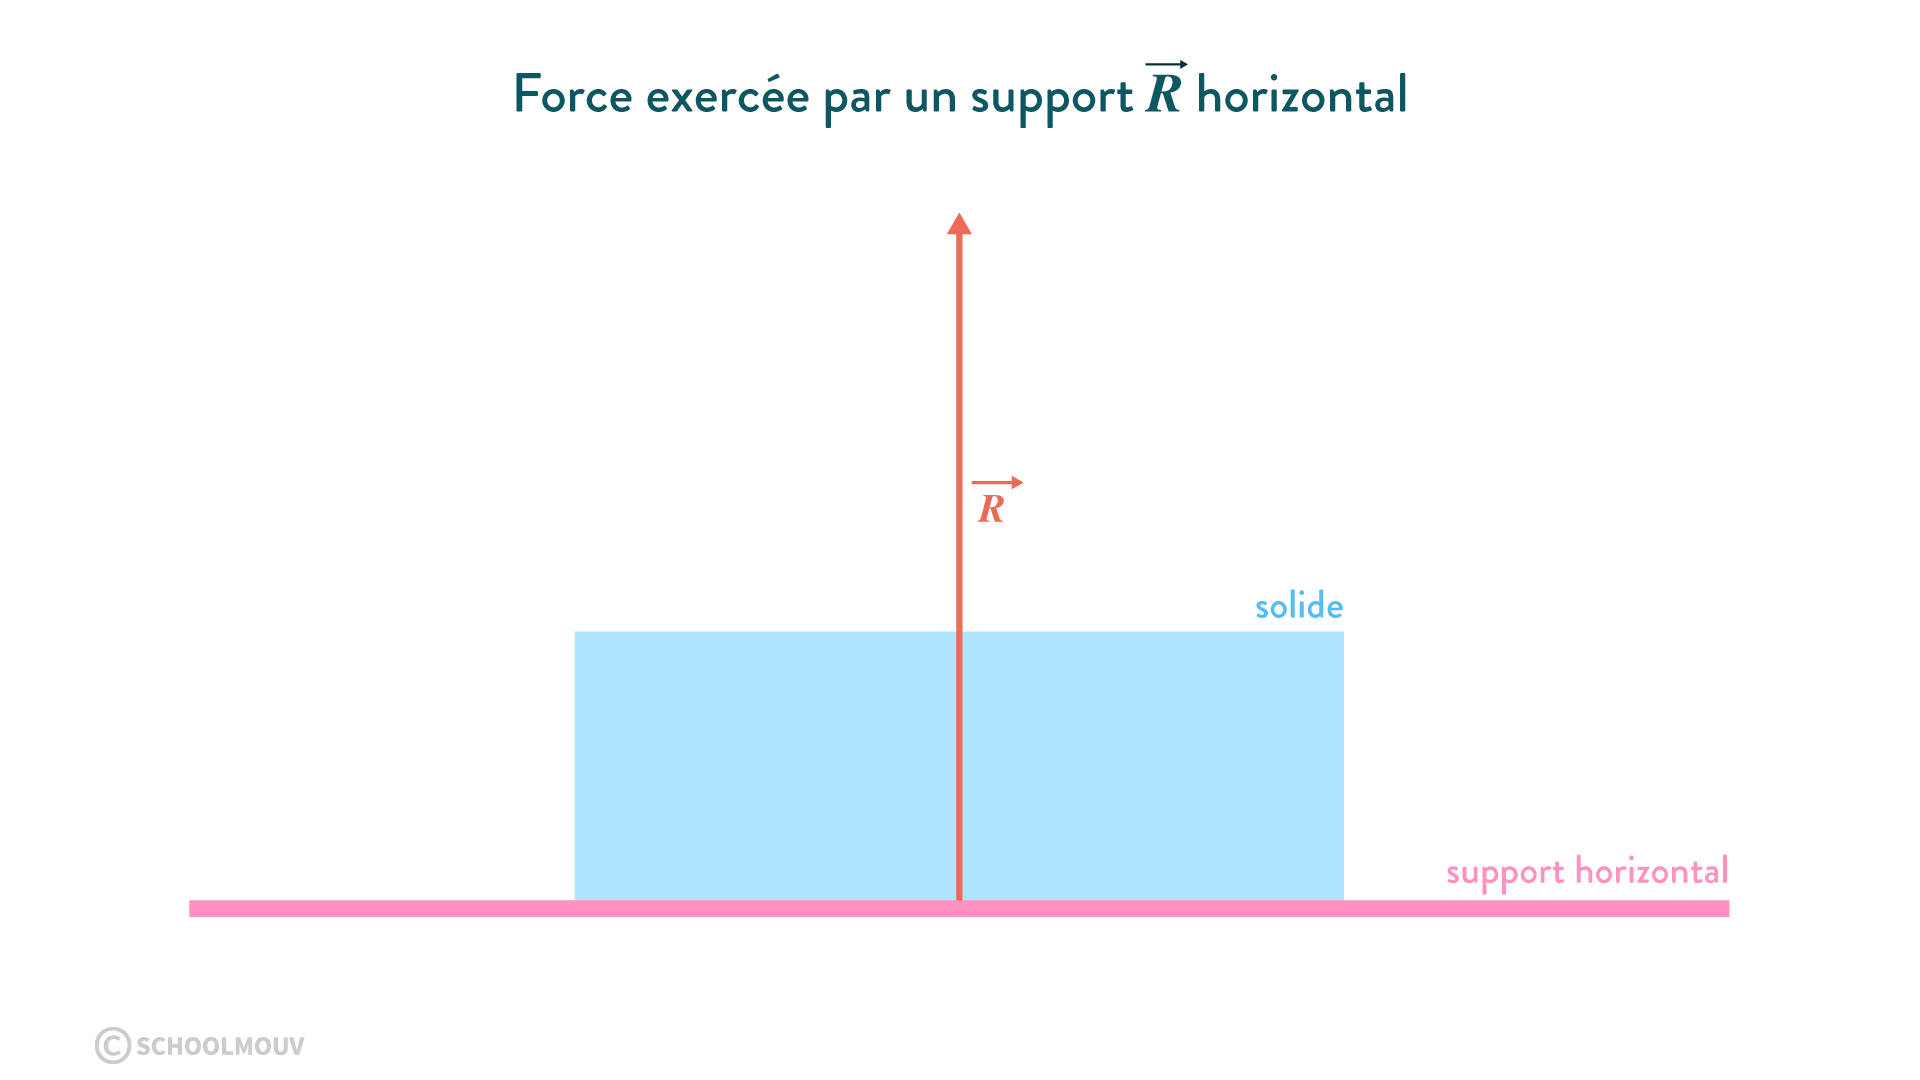 La force exercée par un support R horizontal